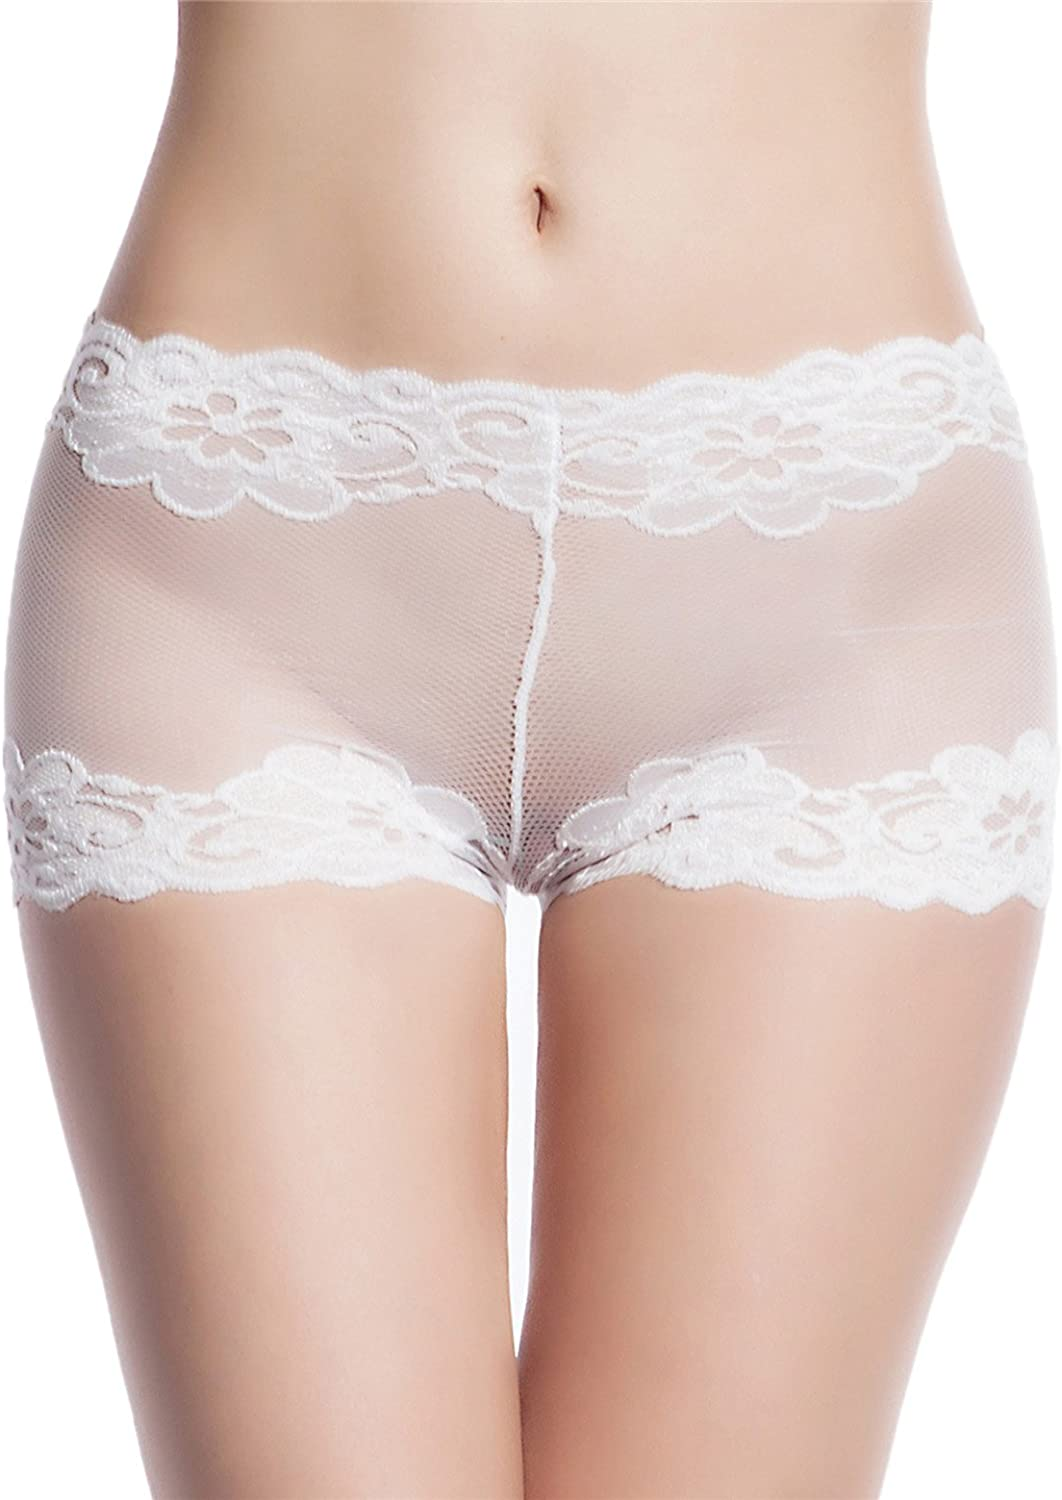 Simply Joshimo New Womens Pack of Lace French Knickers//Ladies Full Back Boy Shorts Briefs